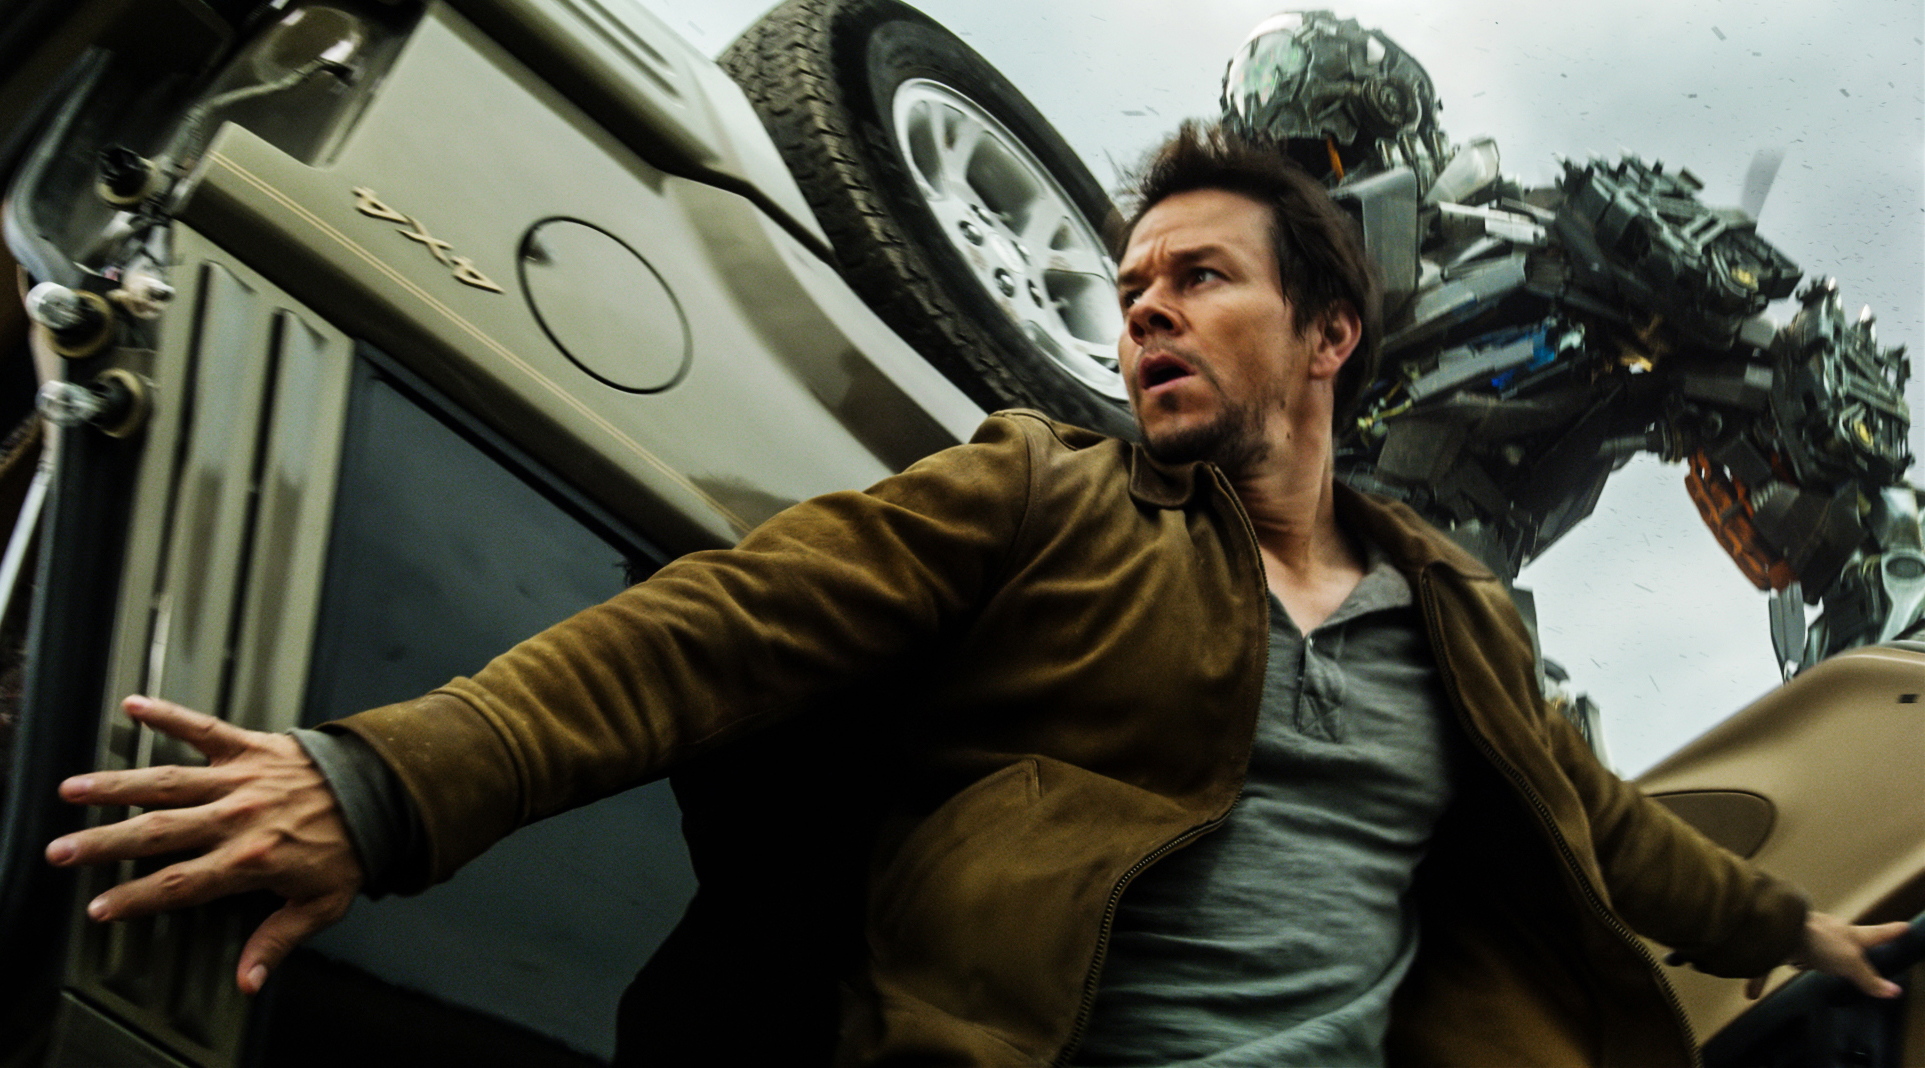 Mark Wahlberg surprised fans when he agreed to star in Transformers: Age of Extinction. The film was a huge hit, earning Mark a fair share of younger fans. He went on to play a teacher with a gambling addiction in The Gambler. In 2015, expect Ted 2 to hit theaters. Global Box Office: $1 billion […]